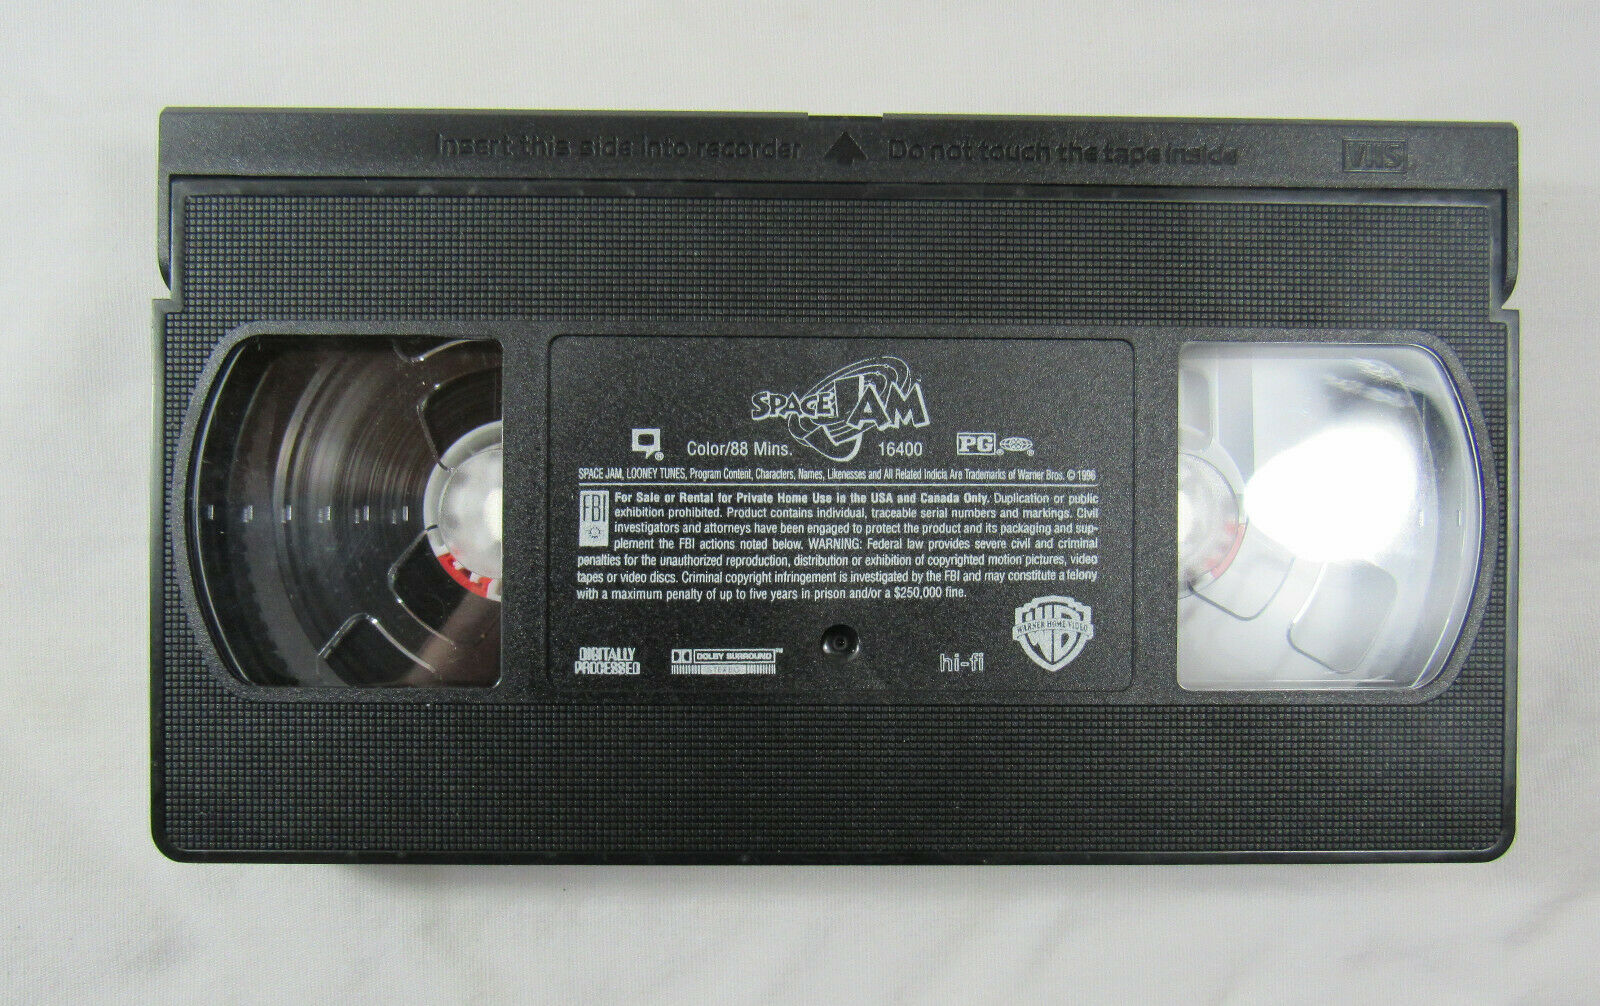 Space Jam VHS, 1997, Clam Shell Michael Jordan, Bugs Bunny, Looney Tunes - $9.99